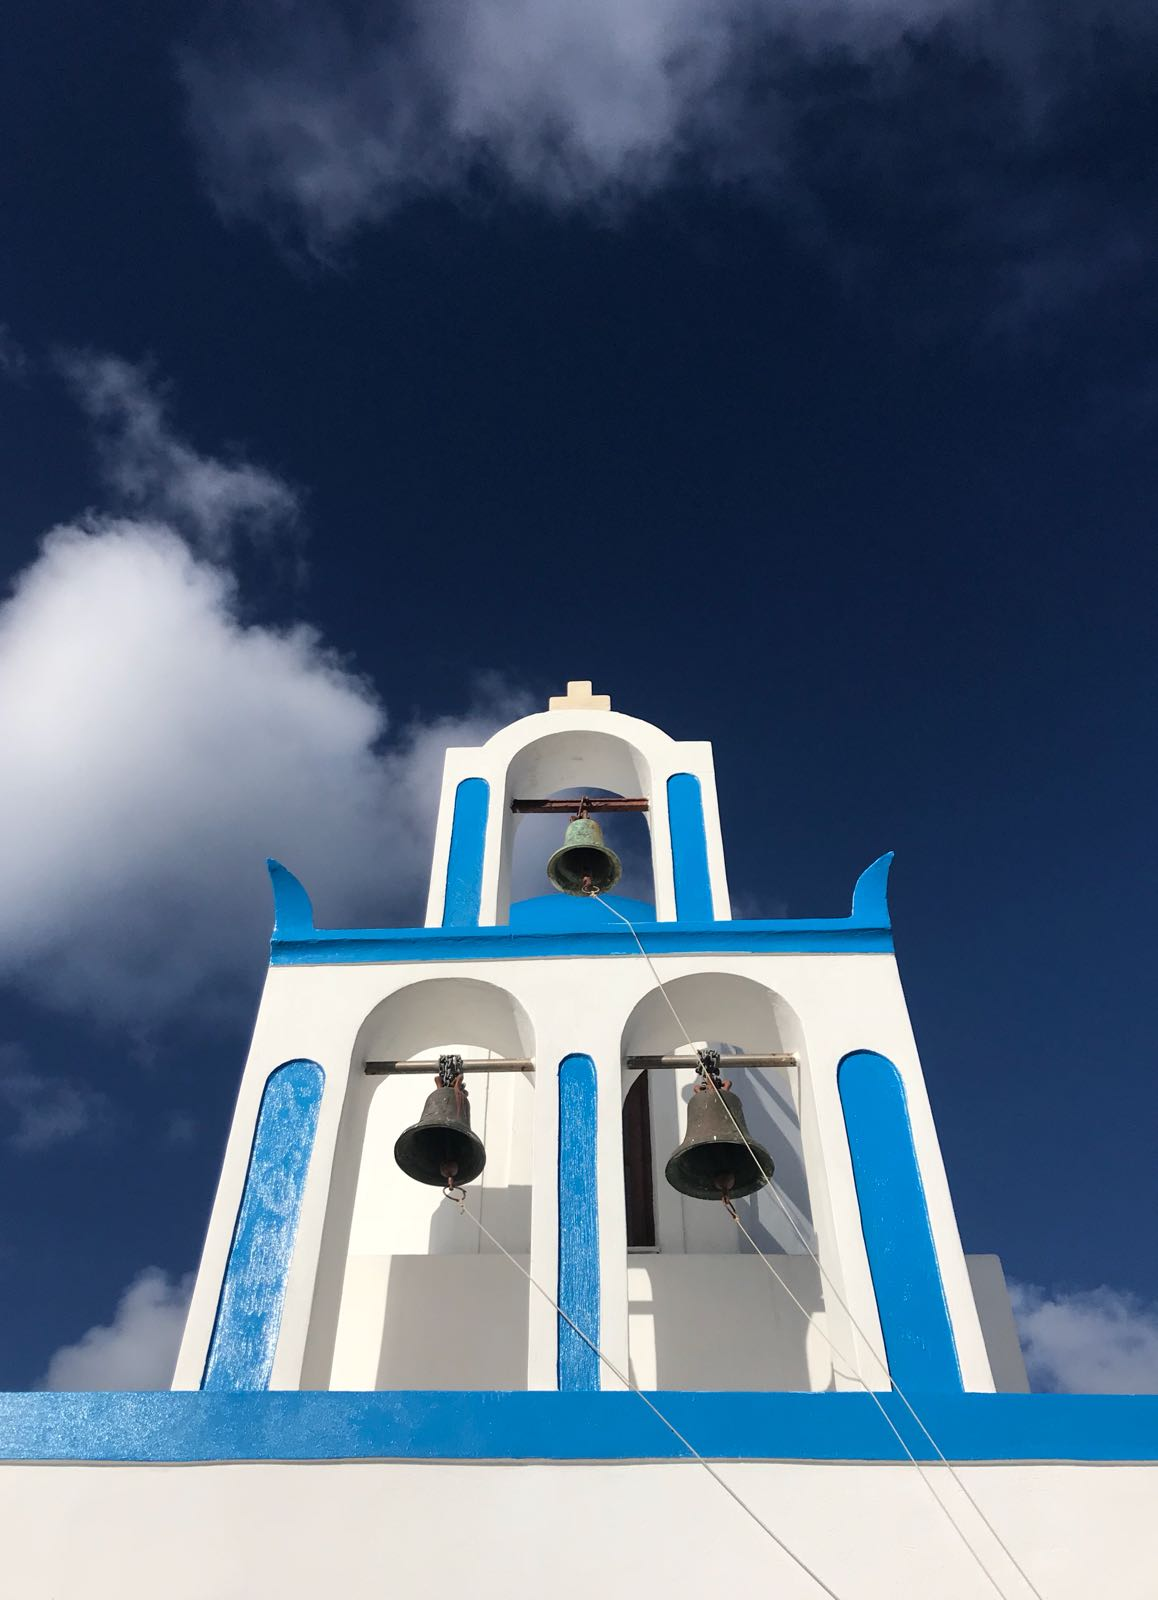 Two level blue and white bell tower against a blue sky